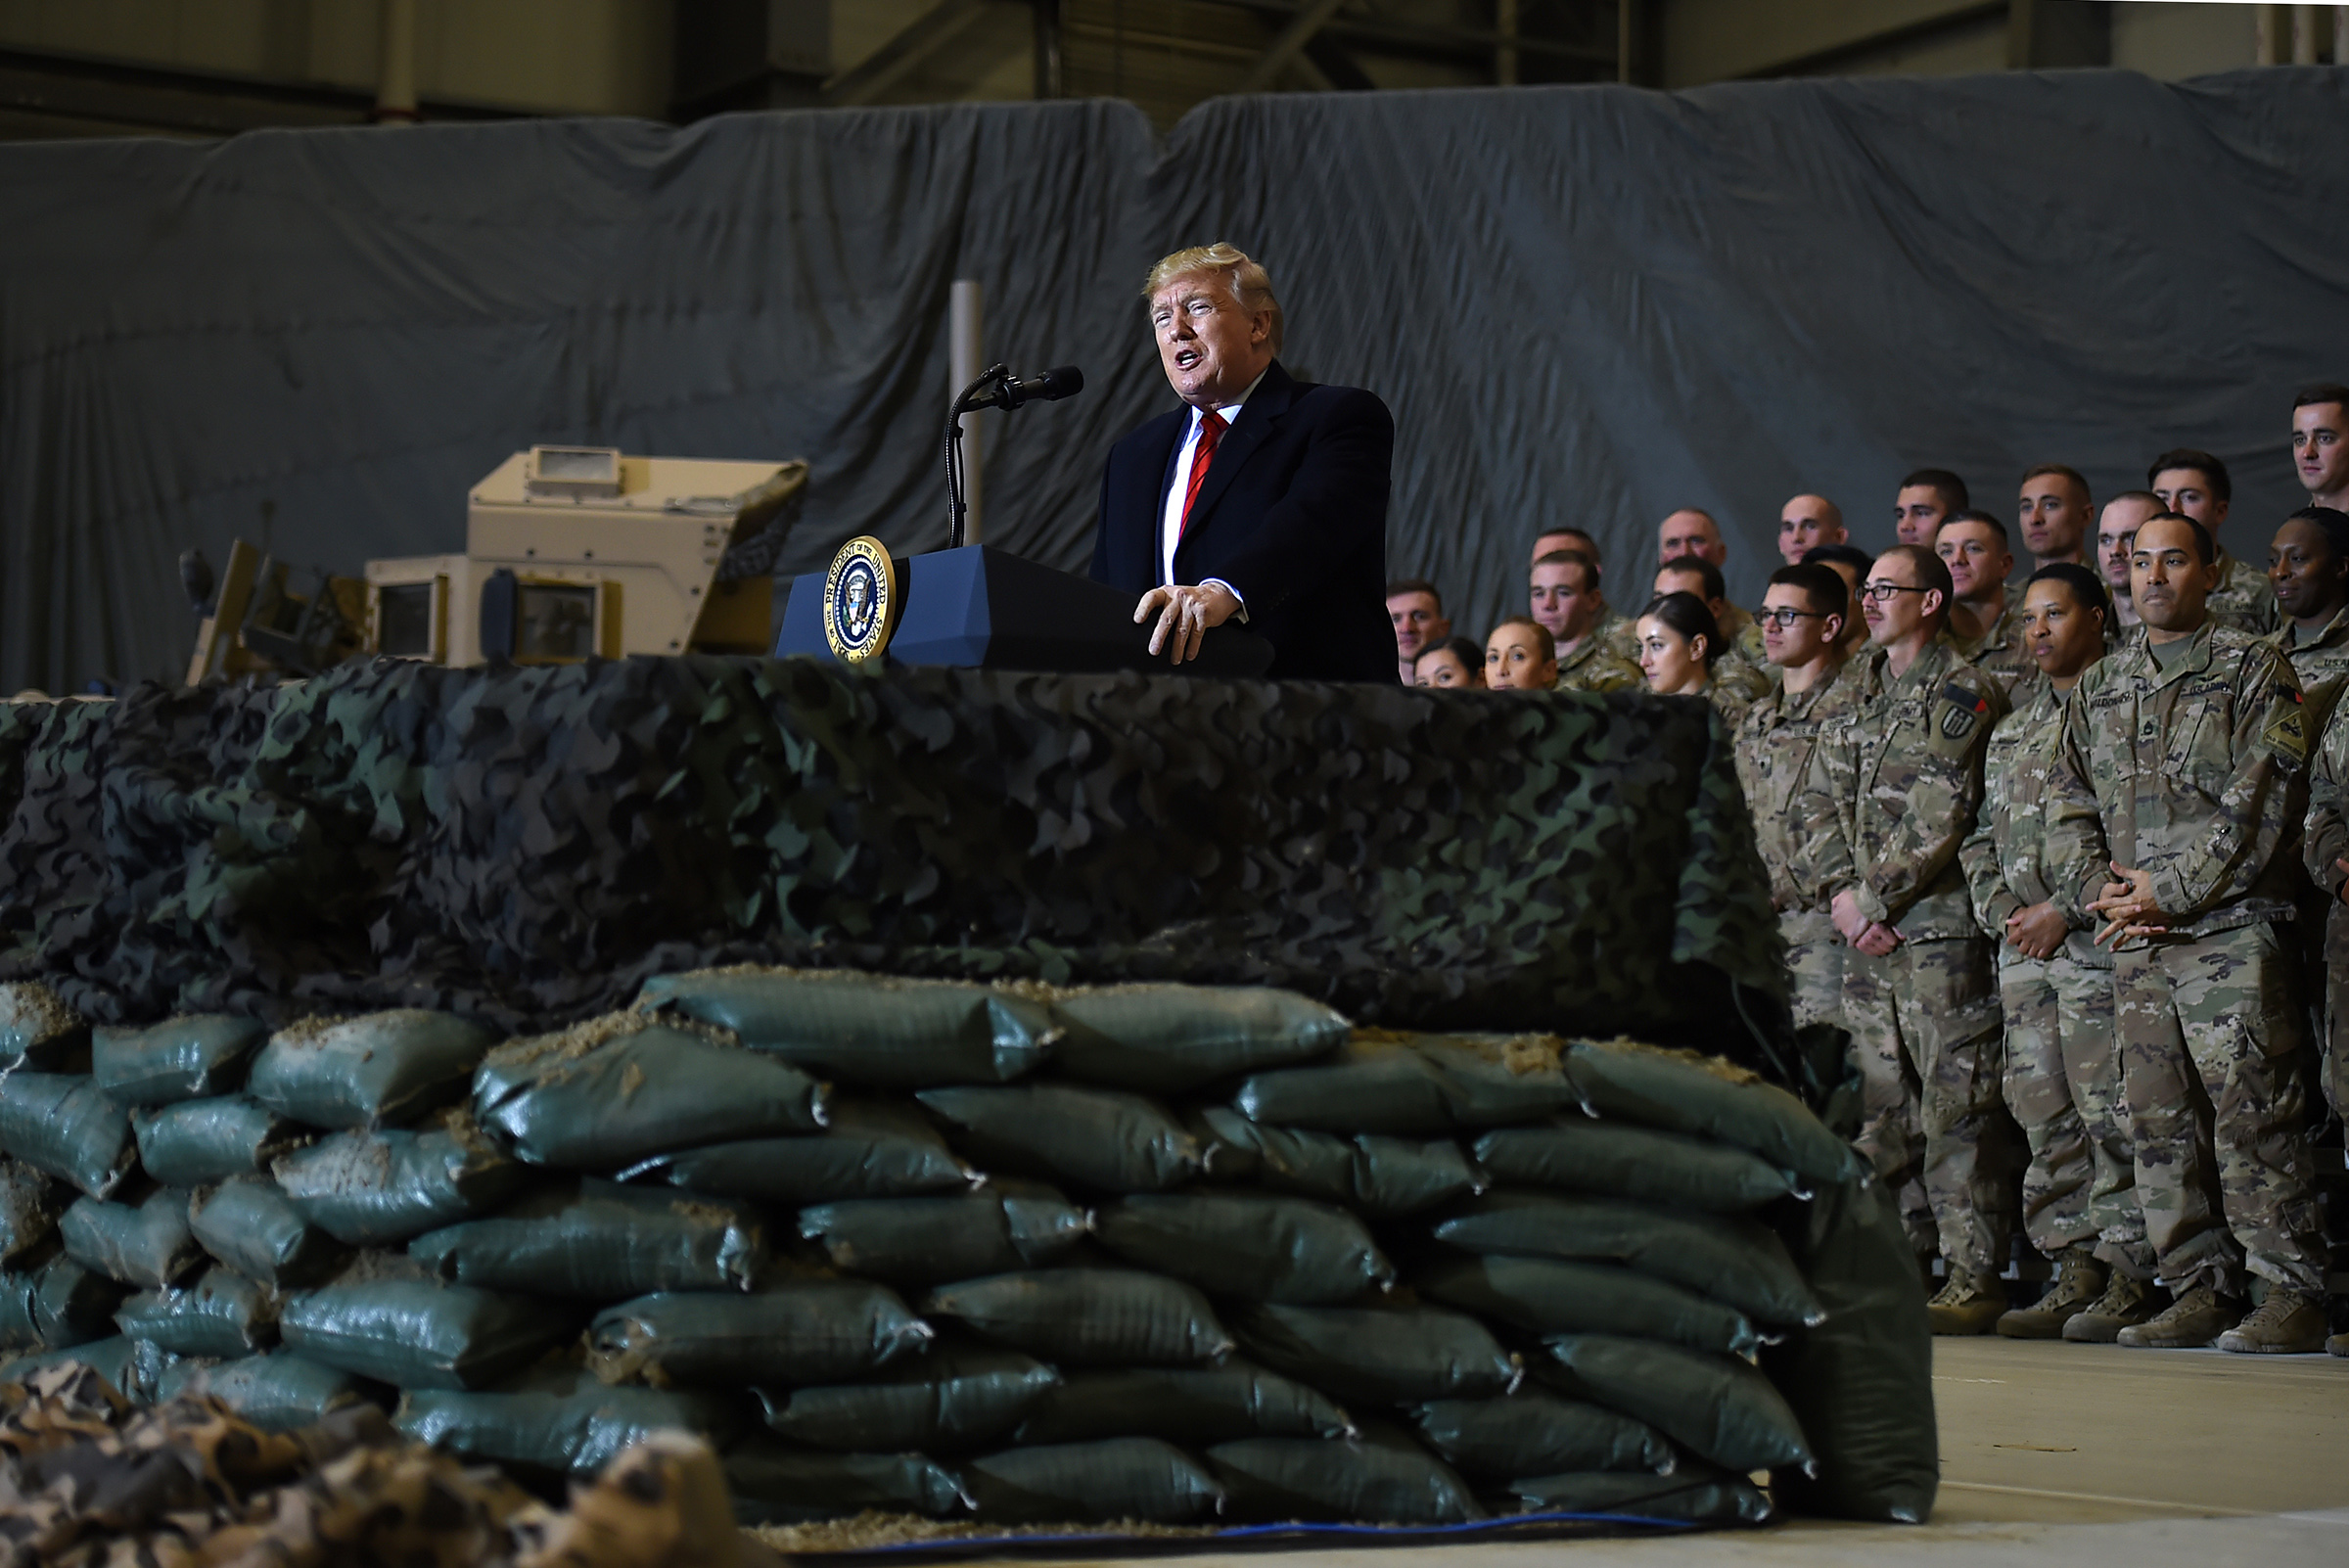 US President Donald Trump speaks to the troops during a surprise Thanksgiving day visit at Bagram Air Field in Afghanistan on Nov. 28, 2019.